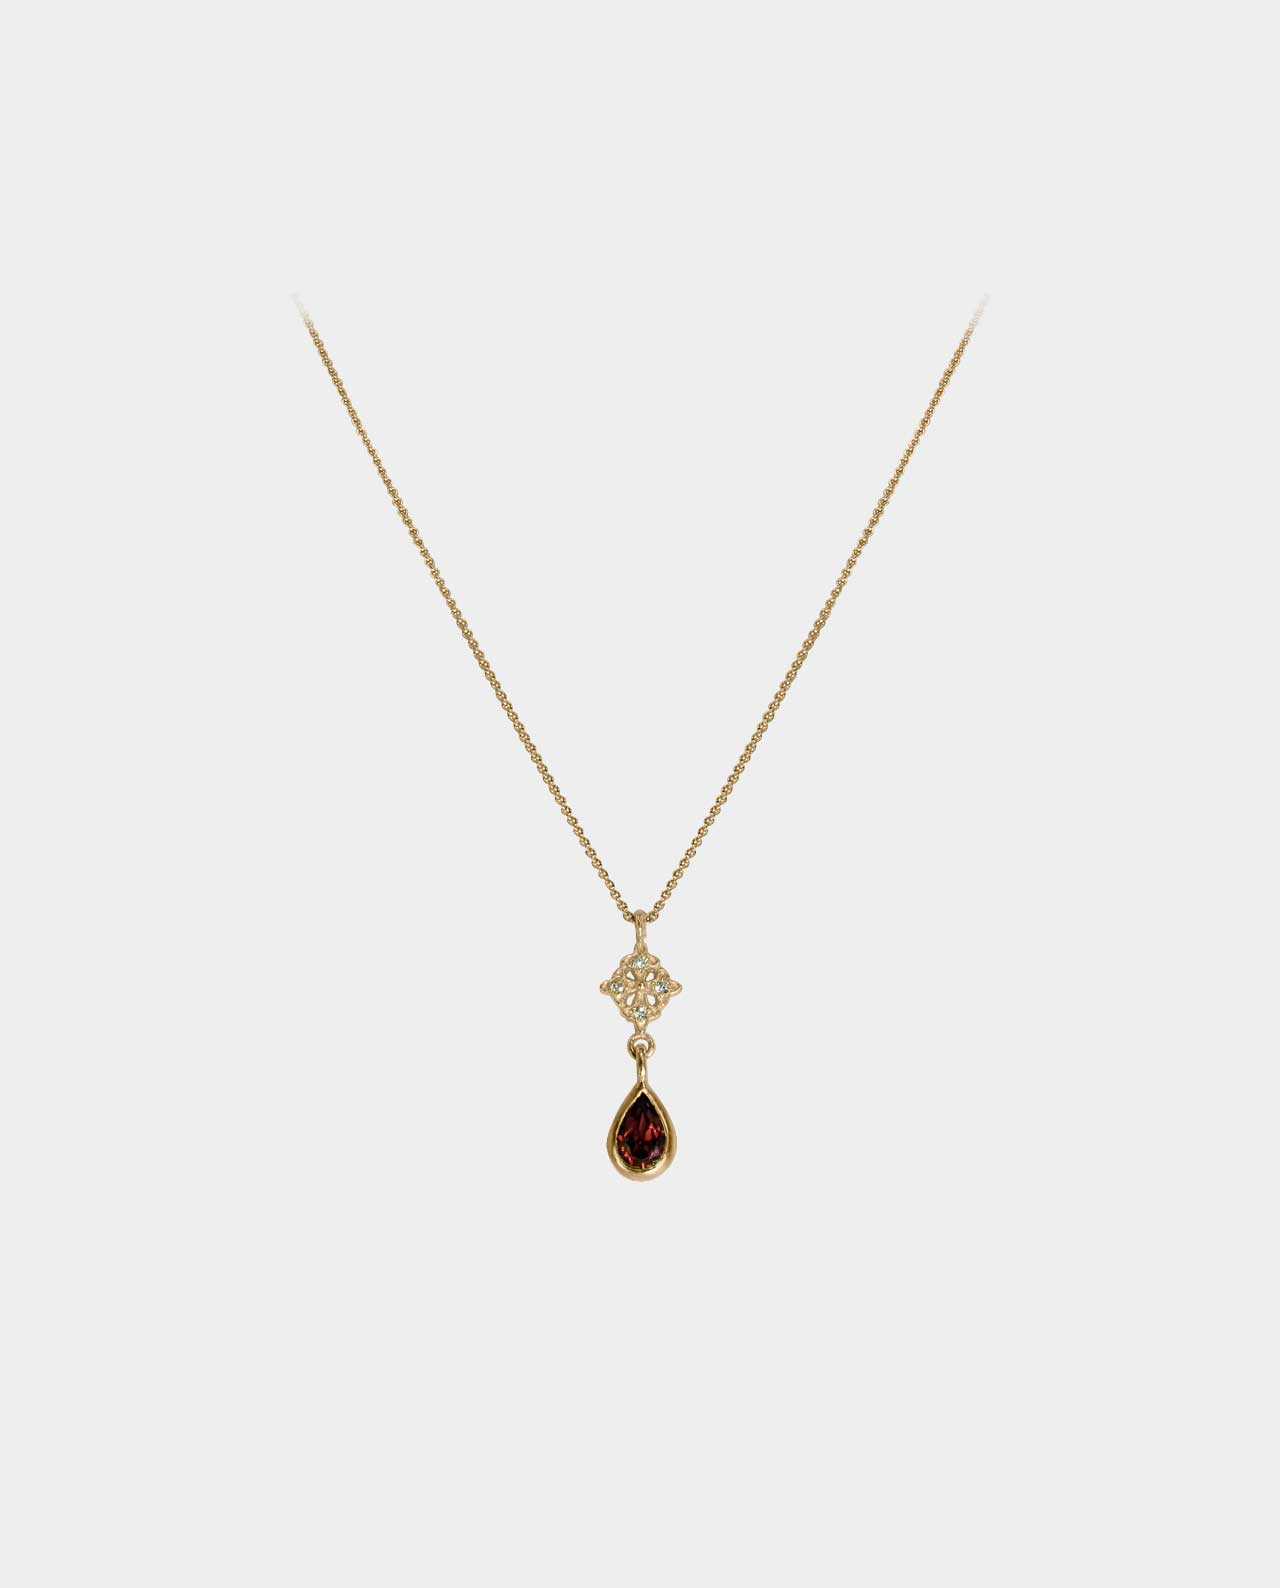 Handmade necklace accentuated by beautiful zirconia in a pendant and a red garnet with elegant setting that has an artistic retro expression for the aesthetic and quality-conscious woman